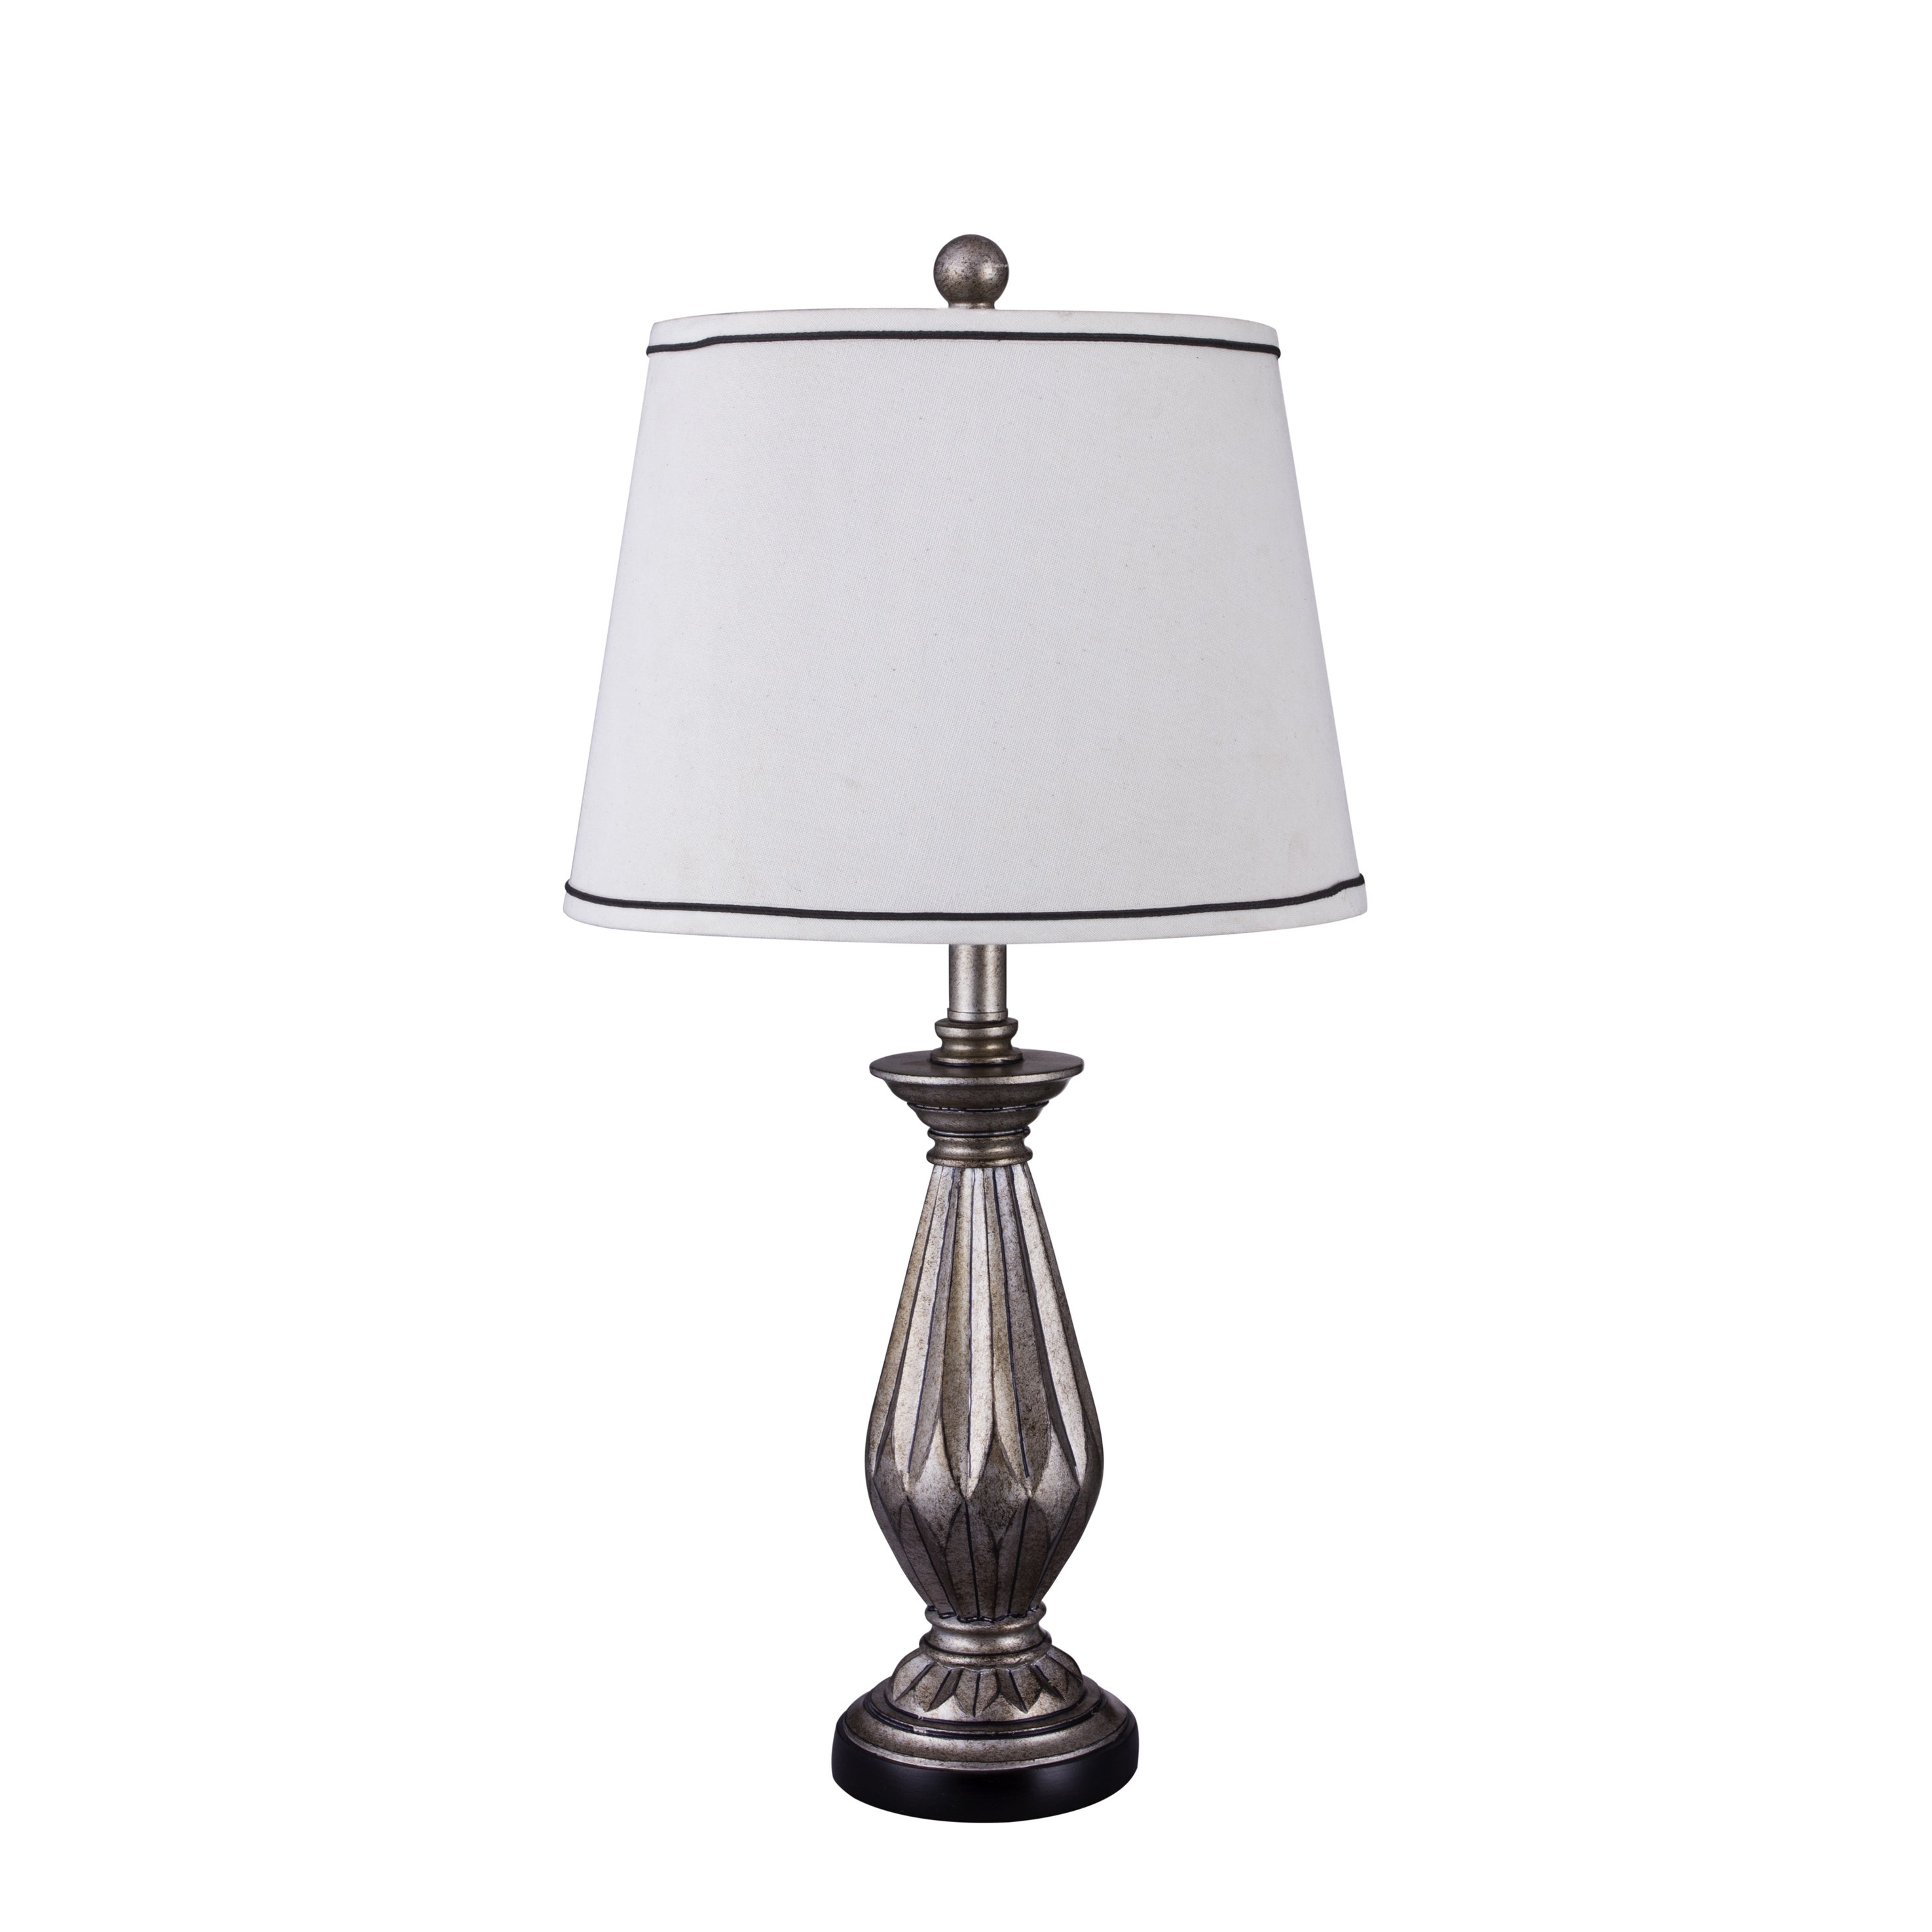 FANGIO s 26-inch Resin Table Lamp with Antique Silver Fin...